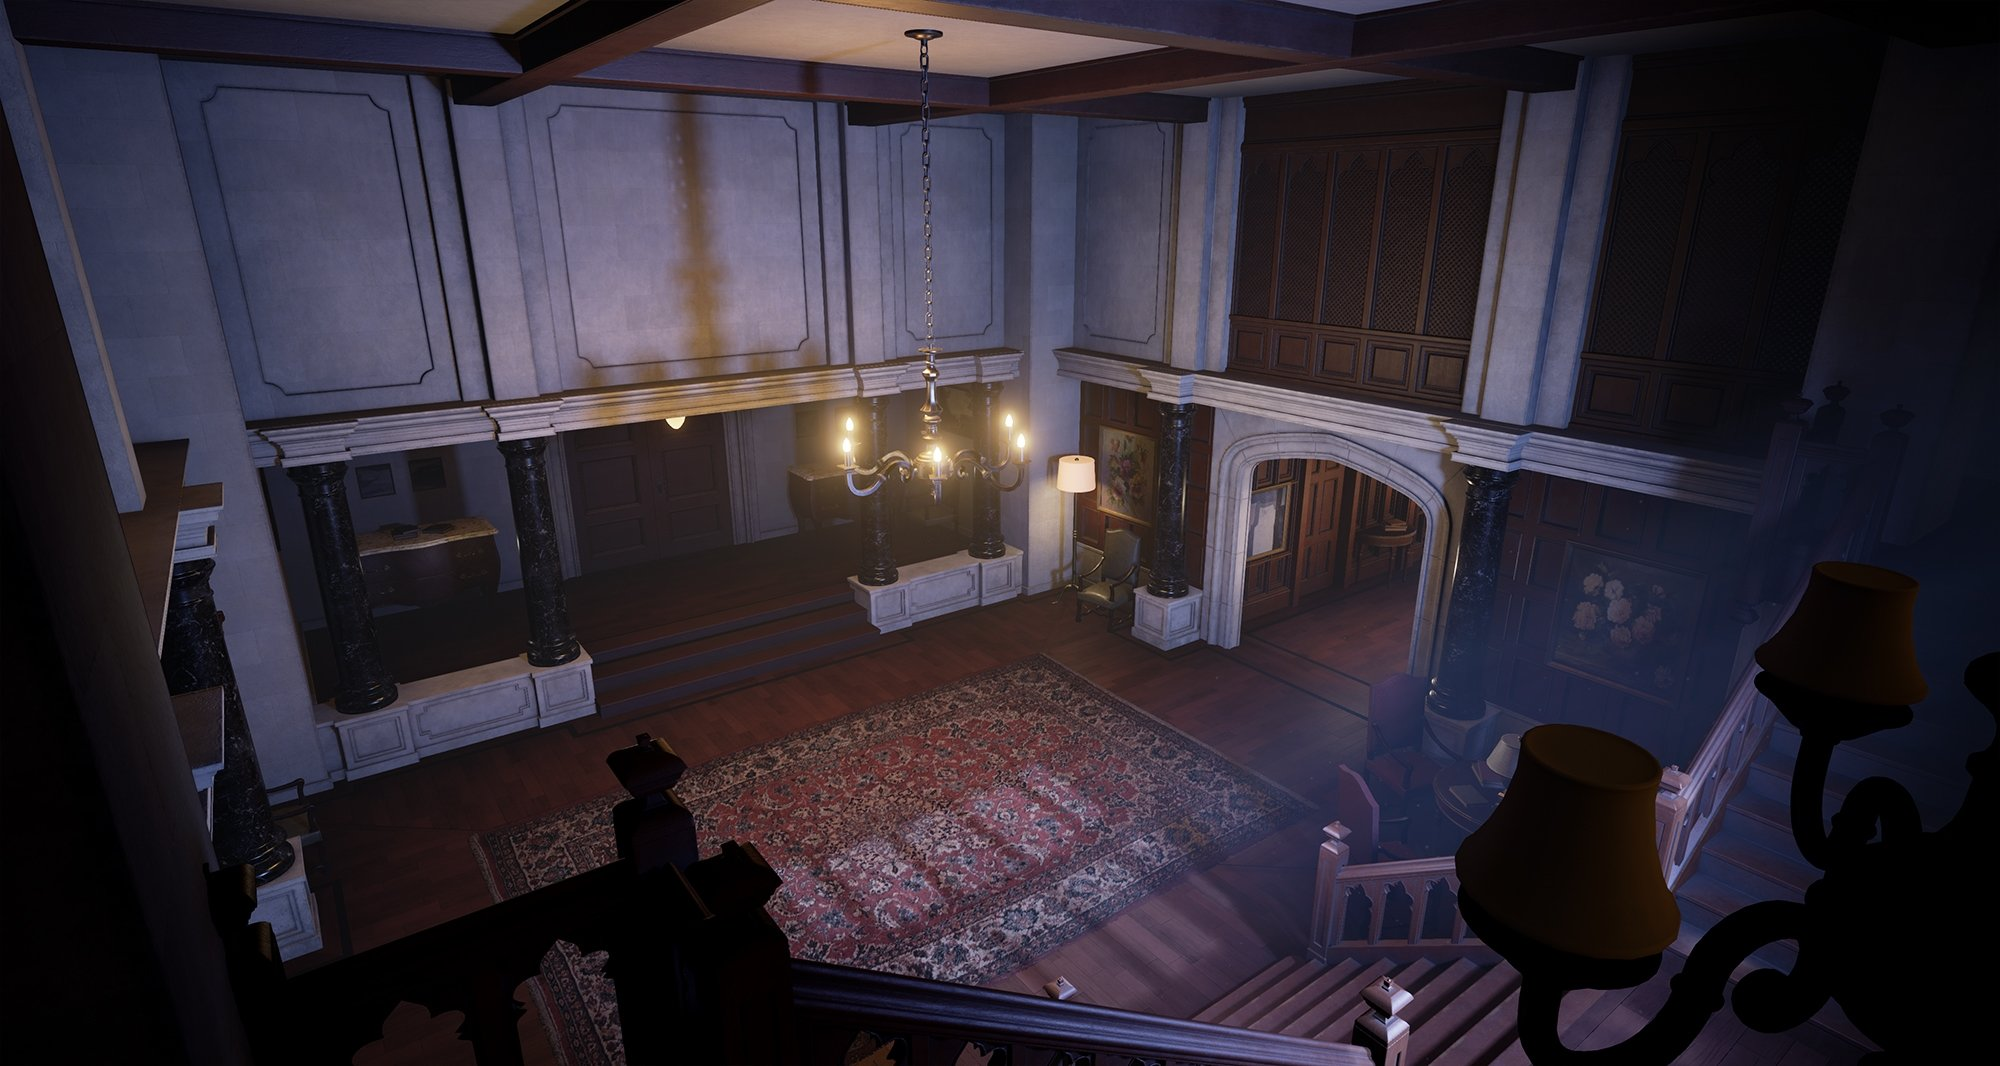 X-Mansion - Unreal Engine 4 — polycount